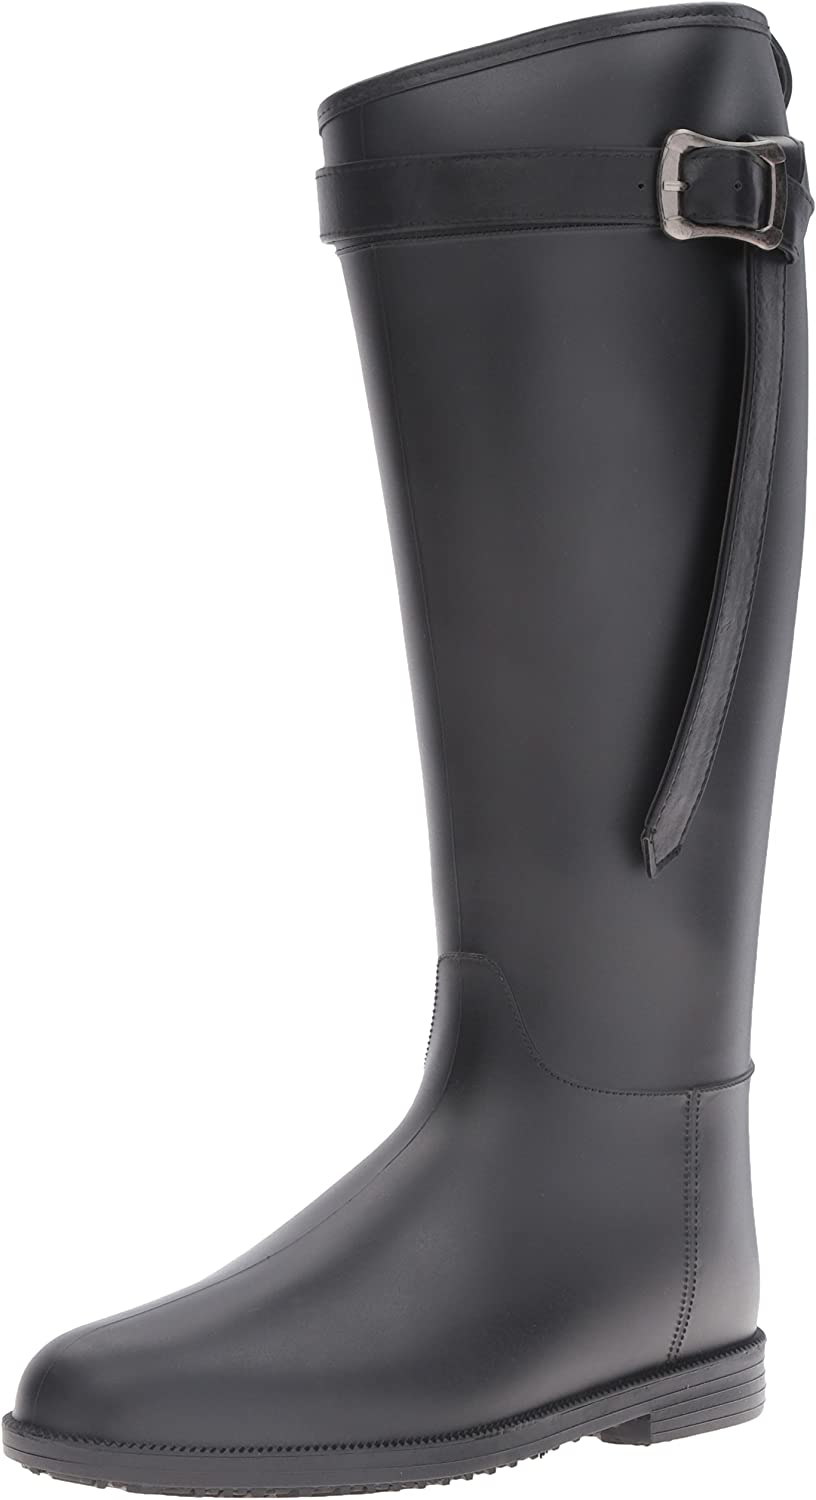 Dirty Laundry by Chinese Laundry Women's Rise Up Boot